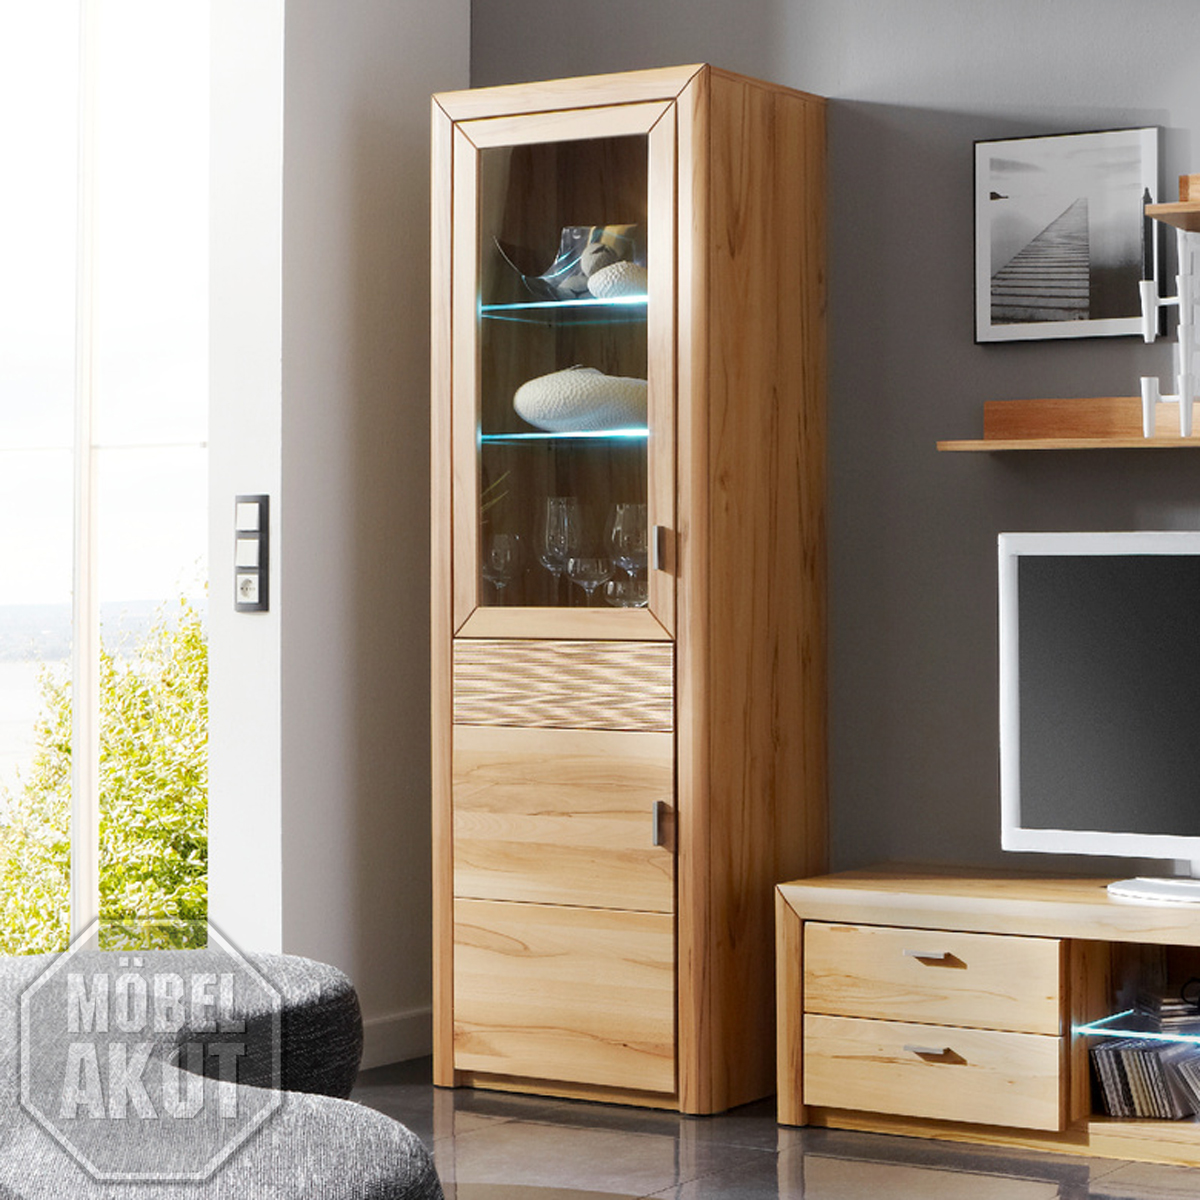 vitrine passepartout 07 l wohnzimmer schrank kernbuche massiv ebay. Black Bedroom Furniture Sets. Home Design Ideas